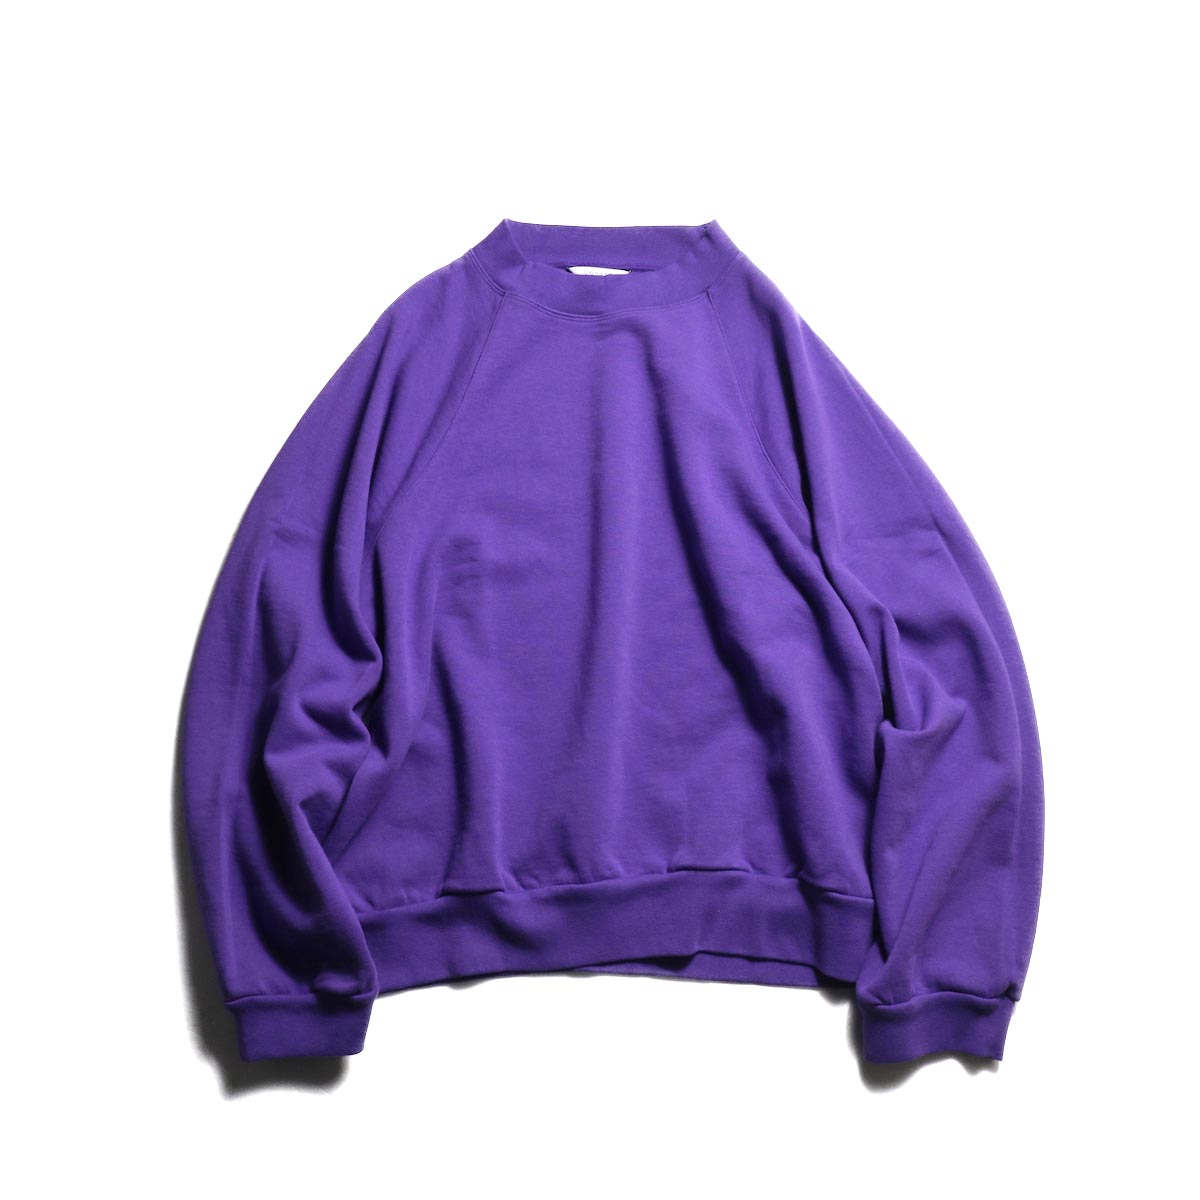 UNUSED / US1678 crew neck sweat shirt. -Purple